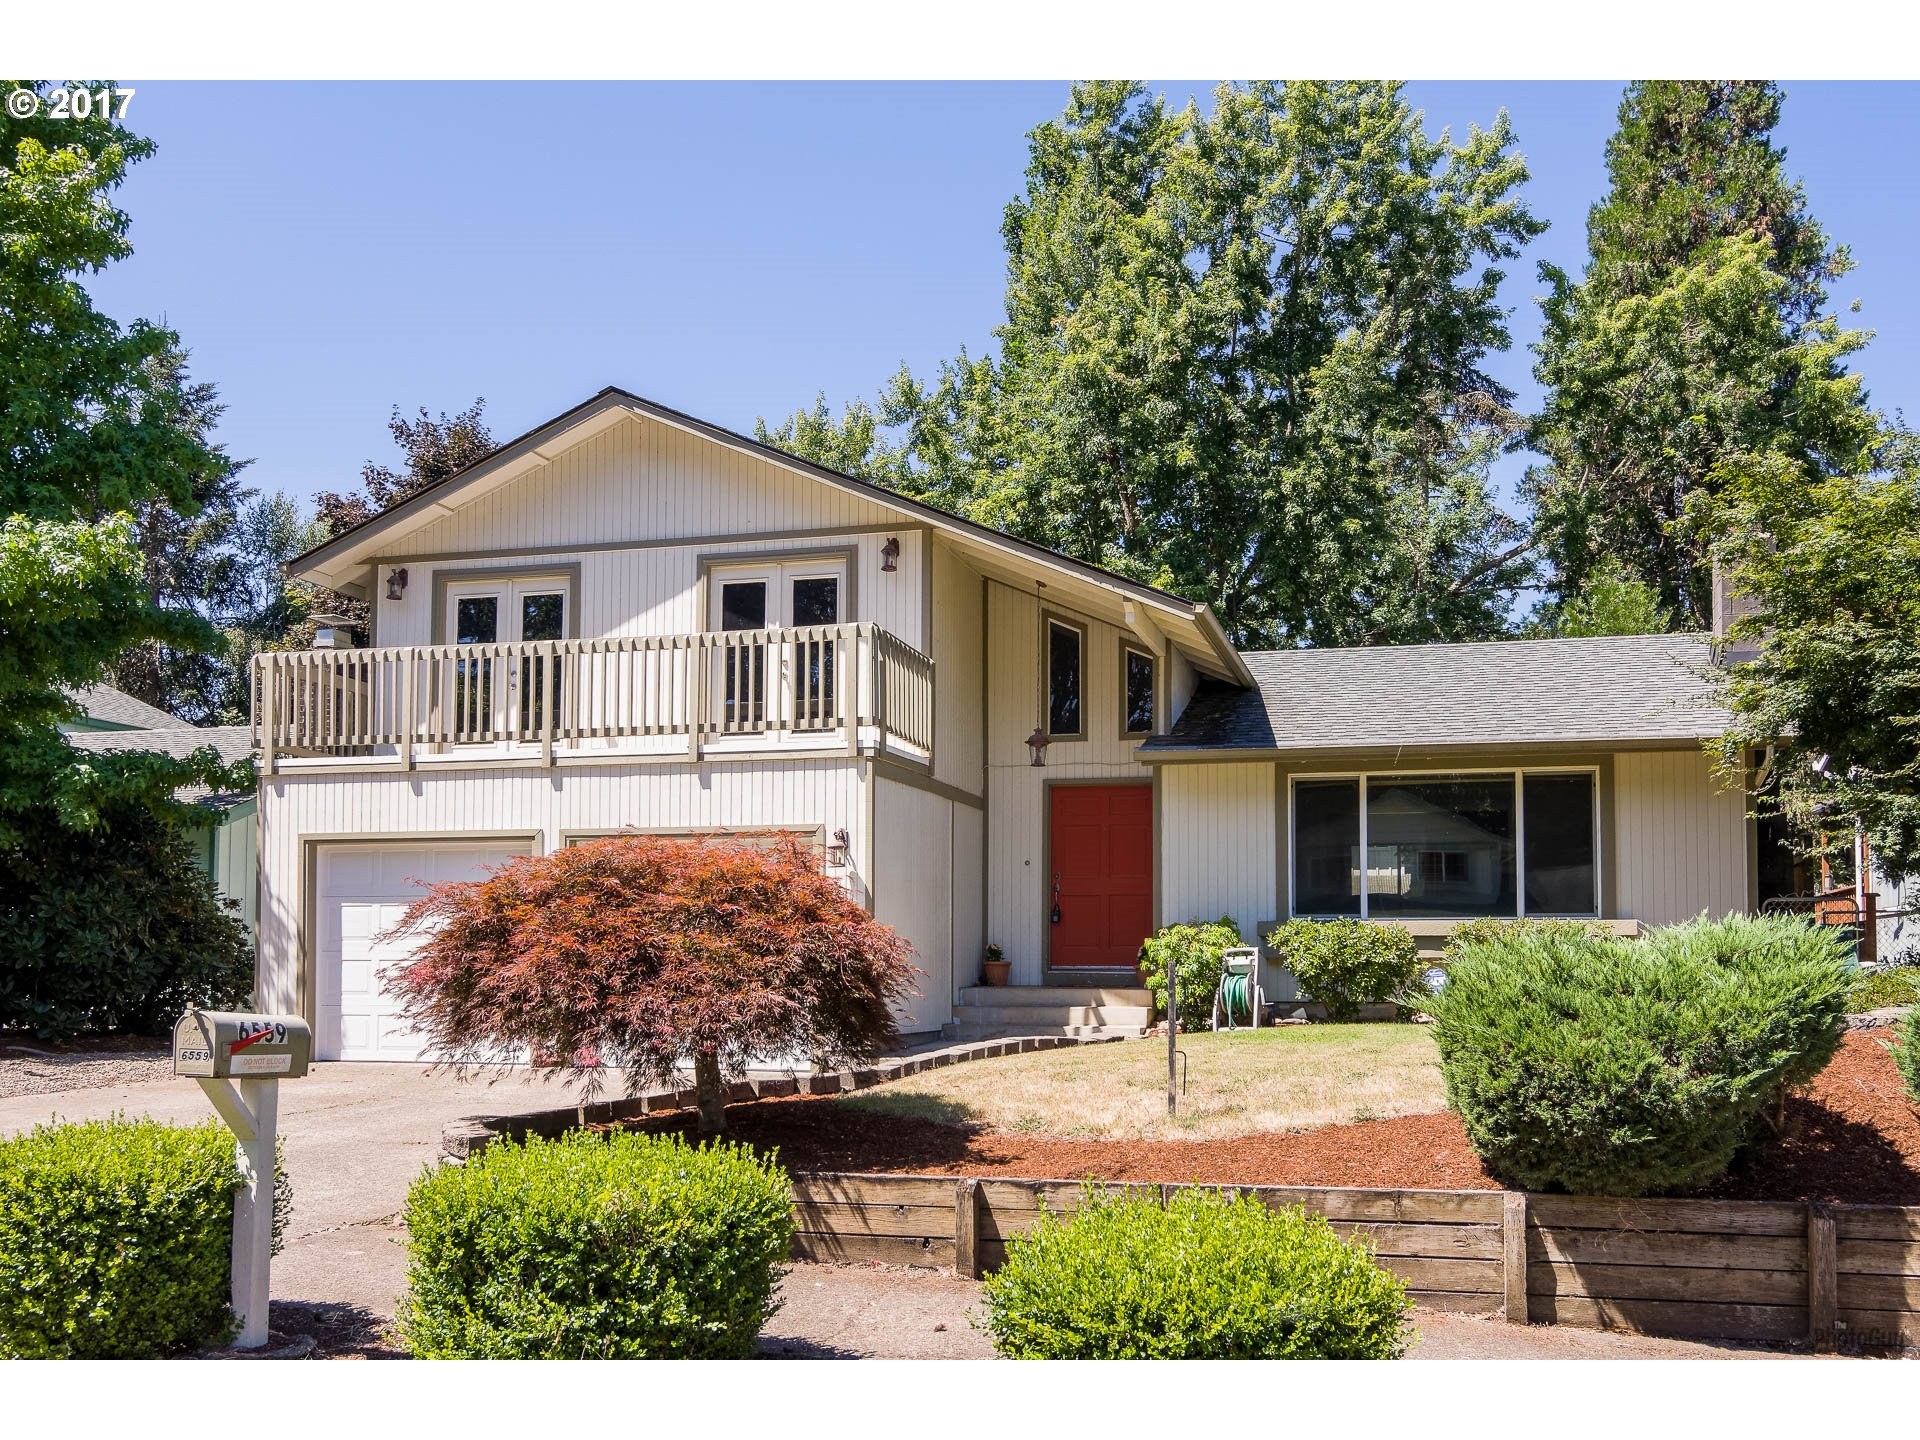 6559 E ST, Springfield OR 97478